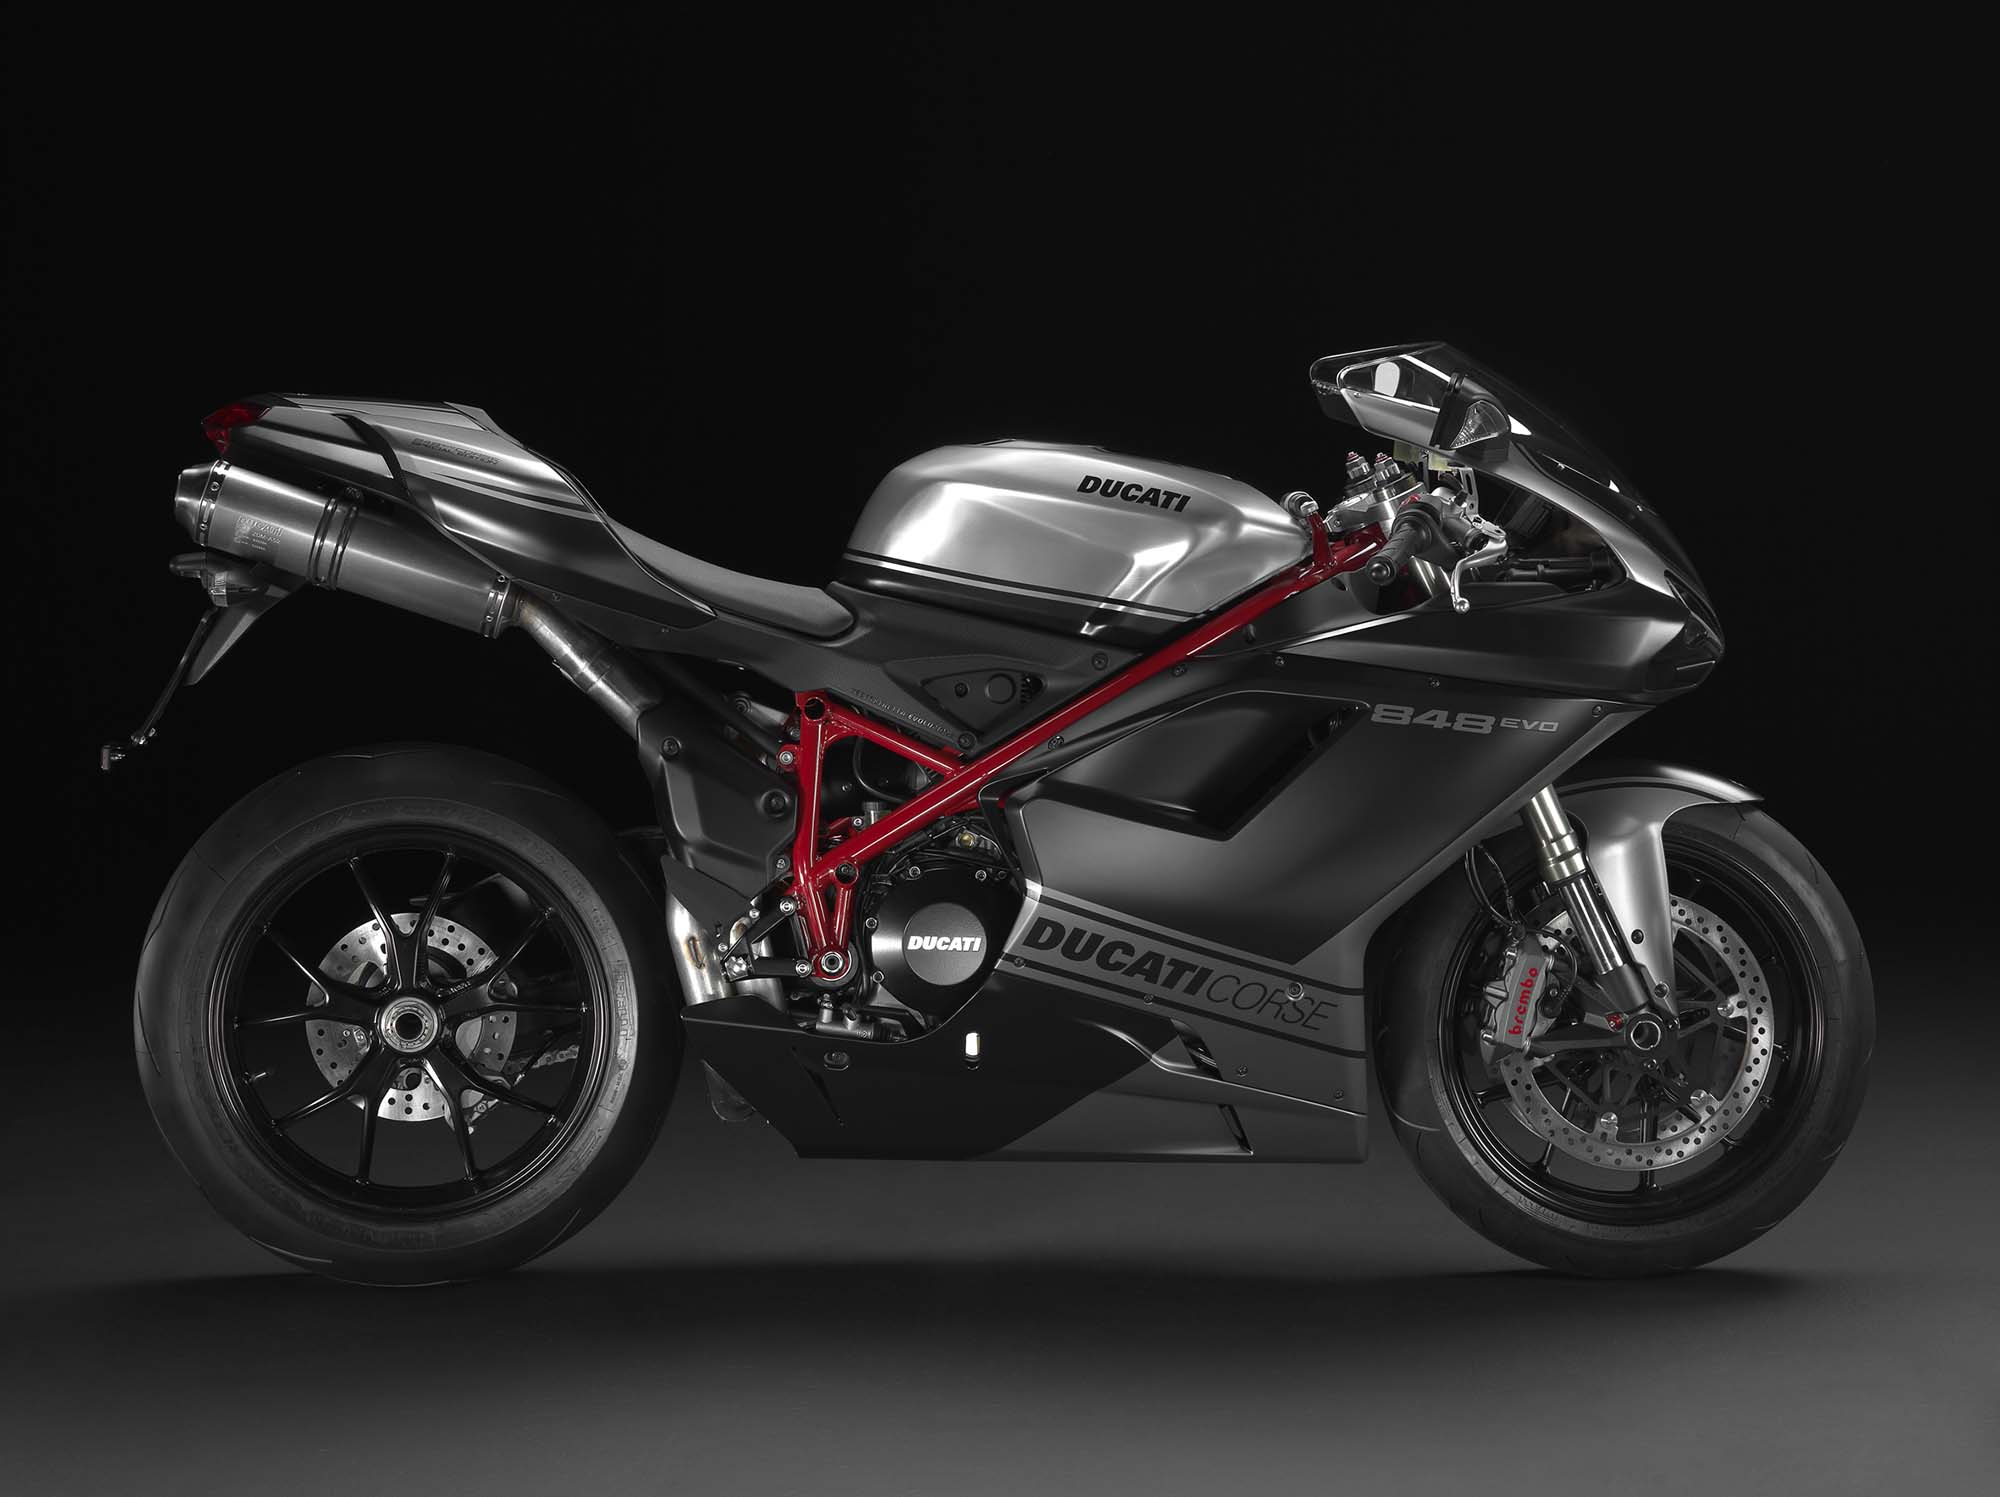 Ducati Superbike 848 Evo Exhaust